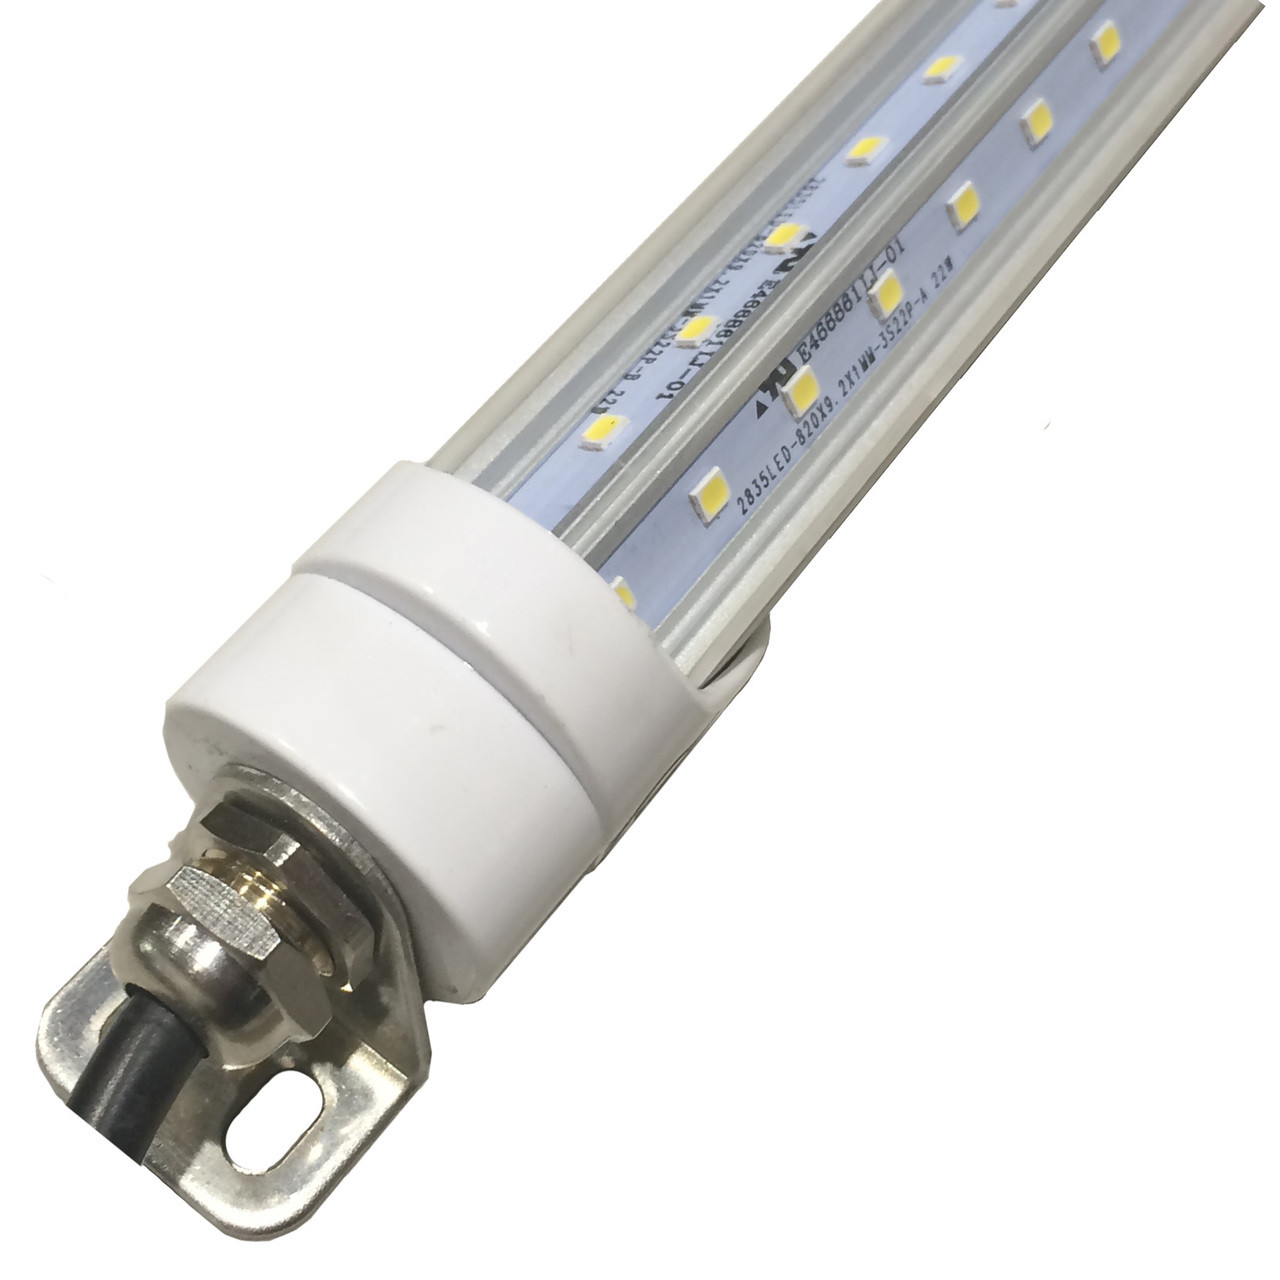 small resolution of t8 led freezer cooler six foot tube to replace florescent s led wiring diagram for t8 6 bulb led light